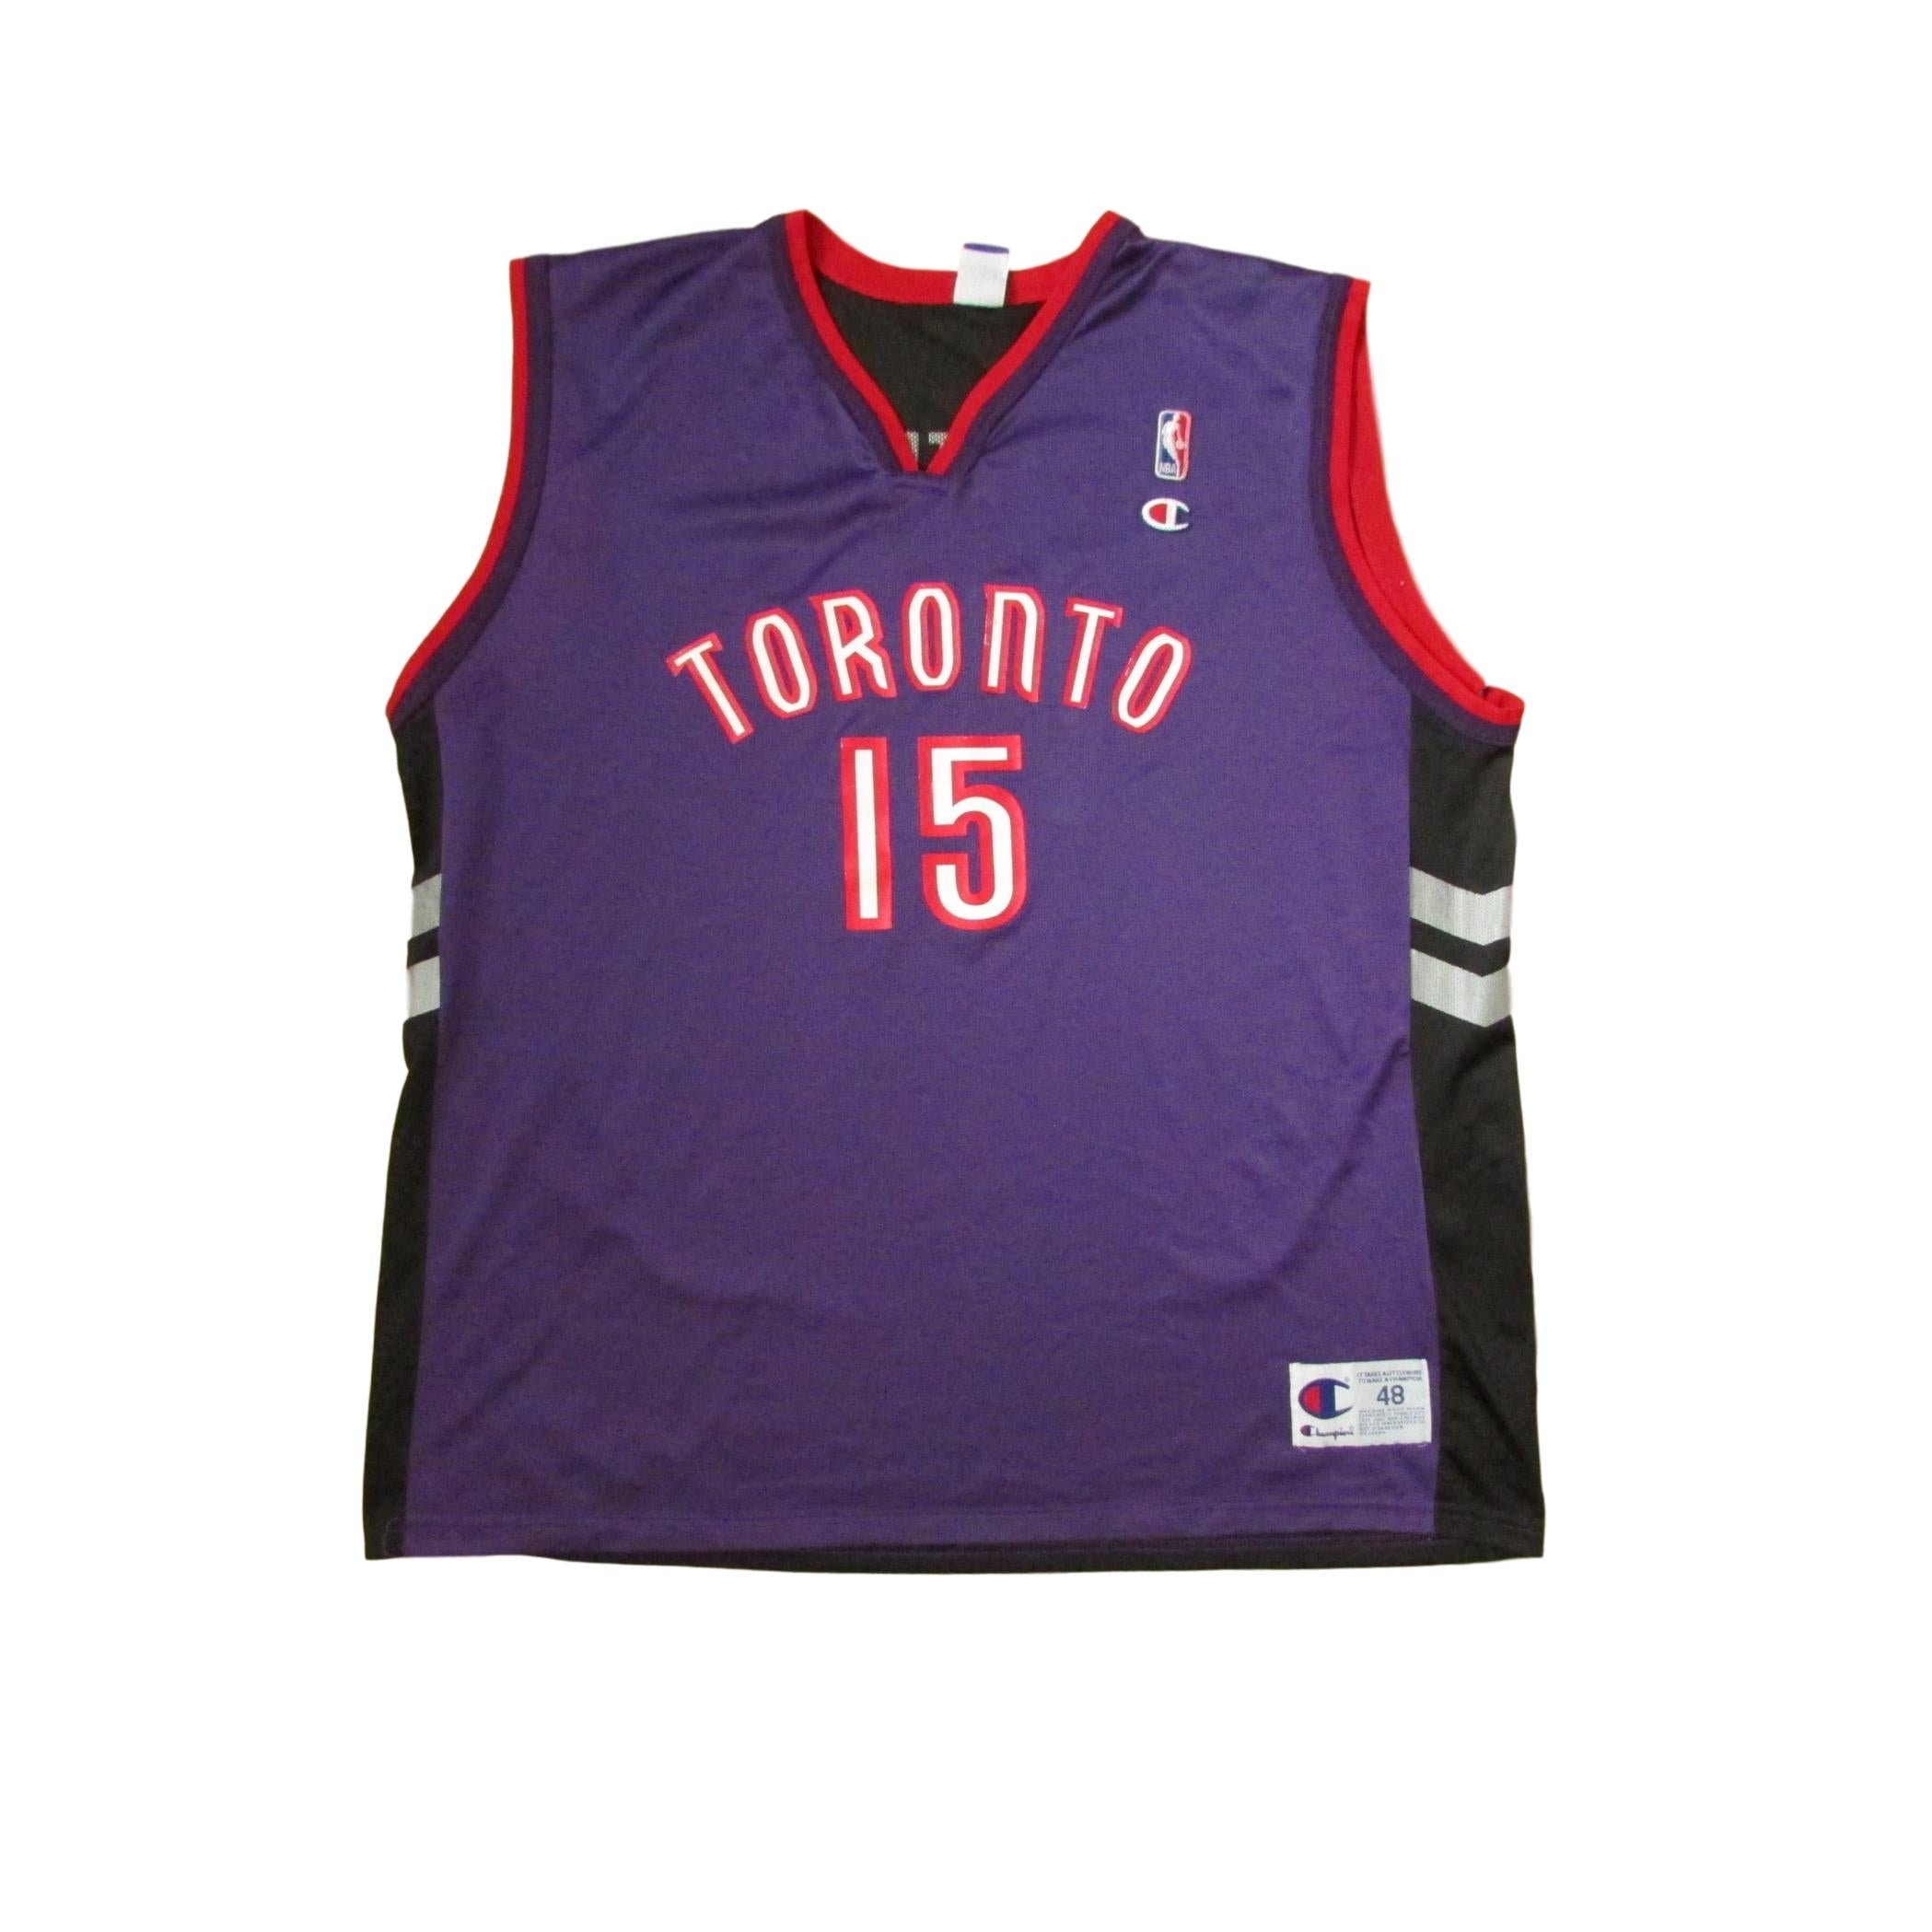 Toronto Raptors Vintage Basketball Vince Carter CHAMPION Jersey Purple Sz 48